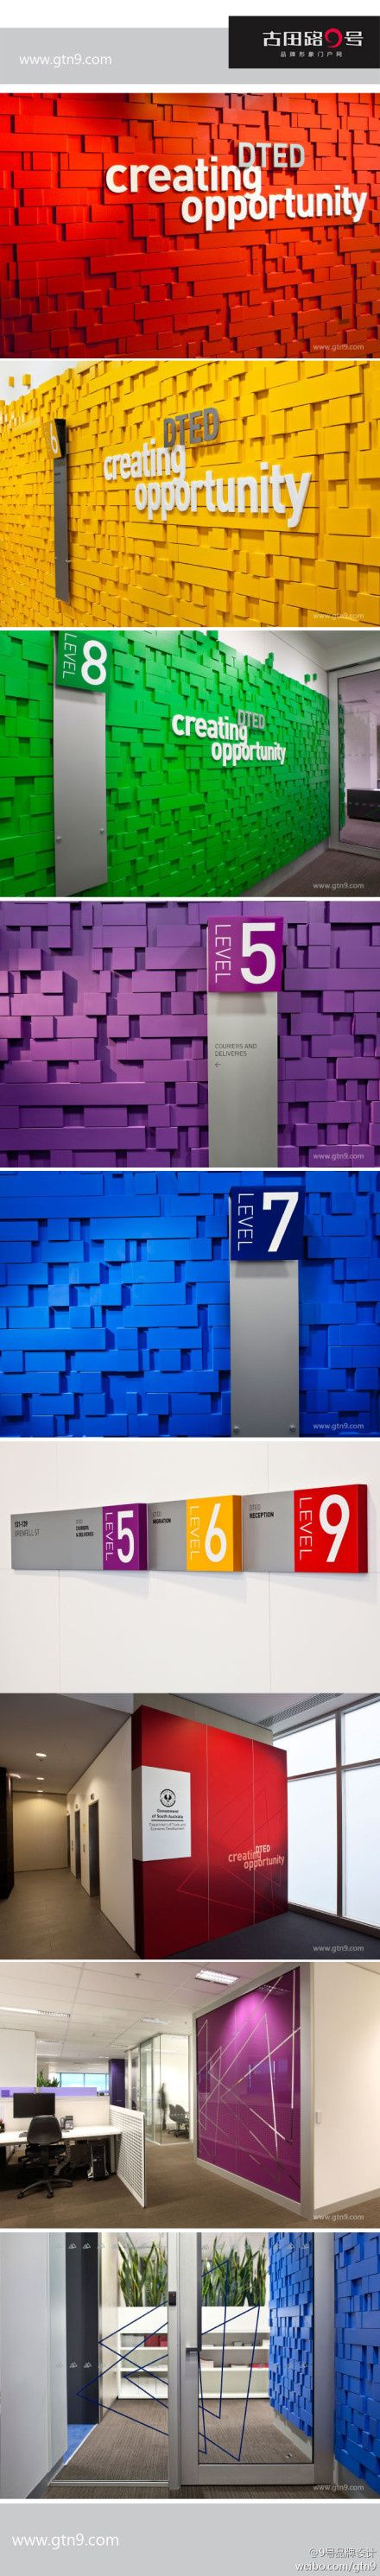 Texture and color for hallways. Also counts as a way for signage.